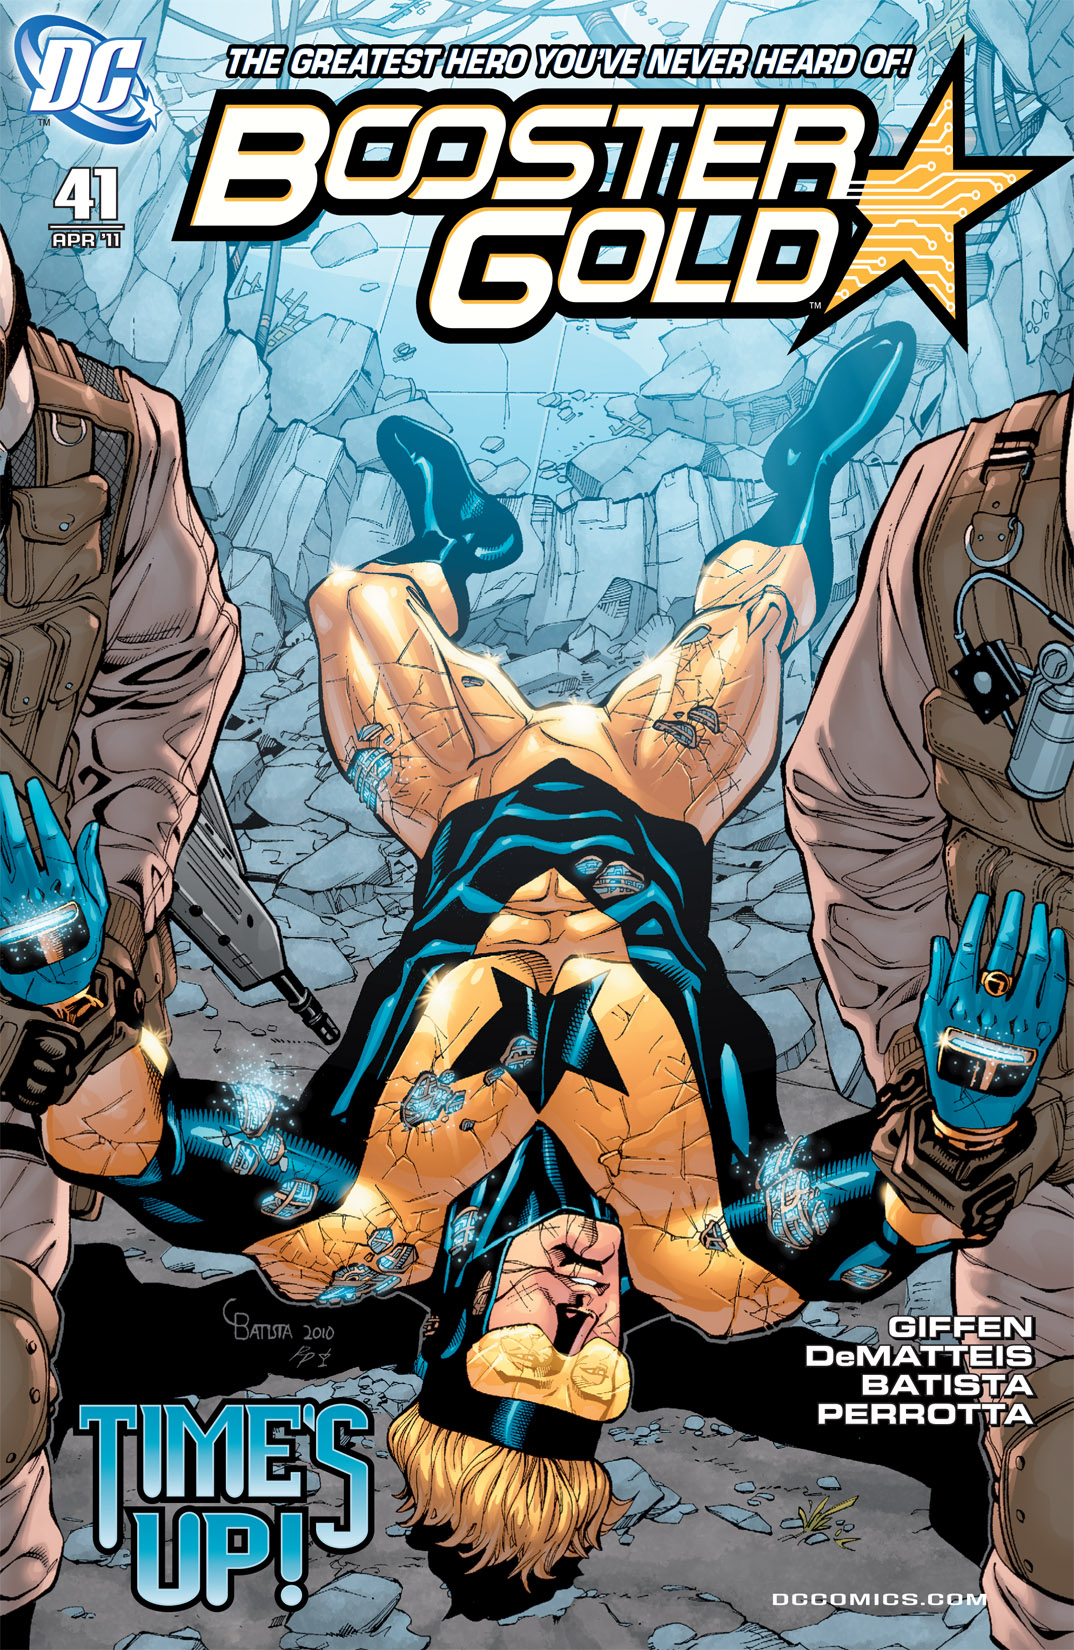 Booster Gold 2007 Issue 41